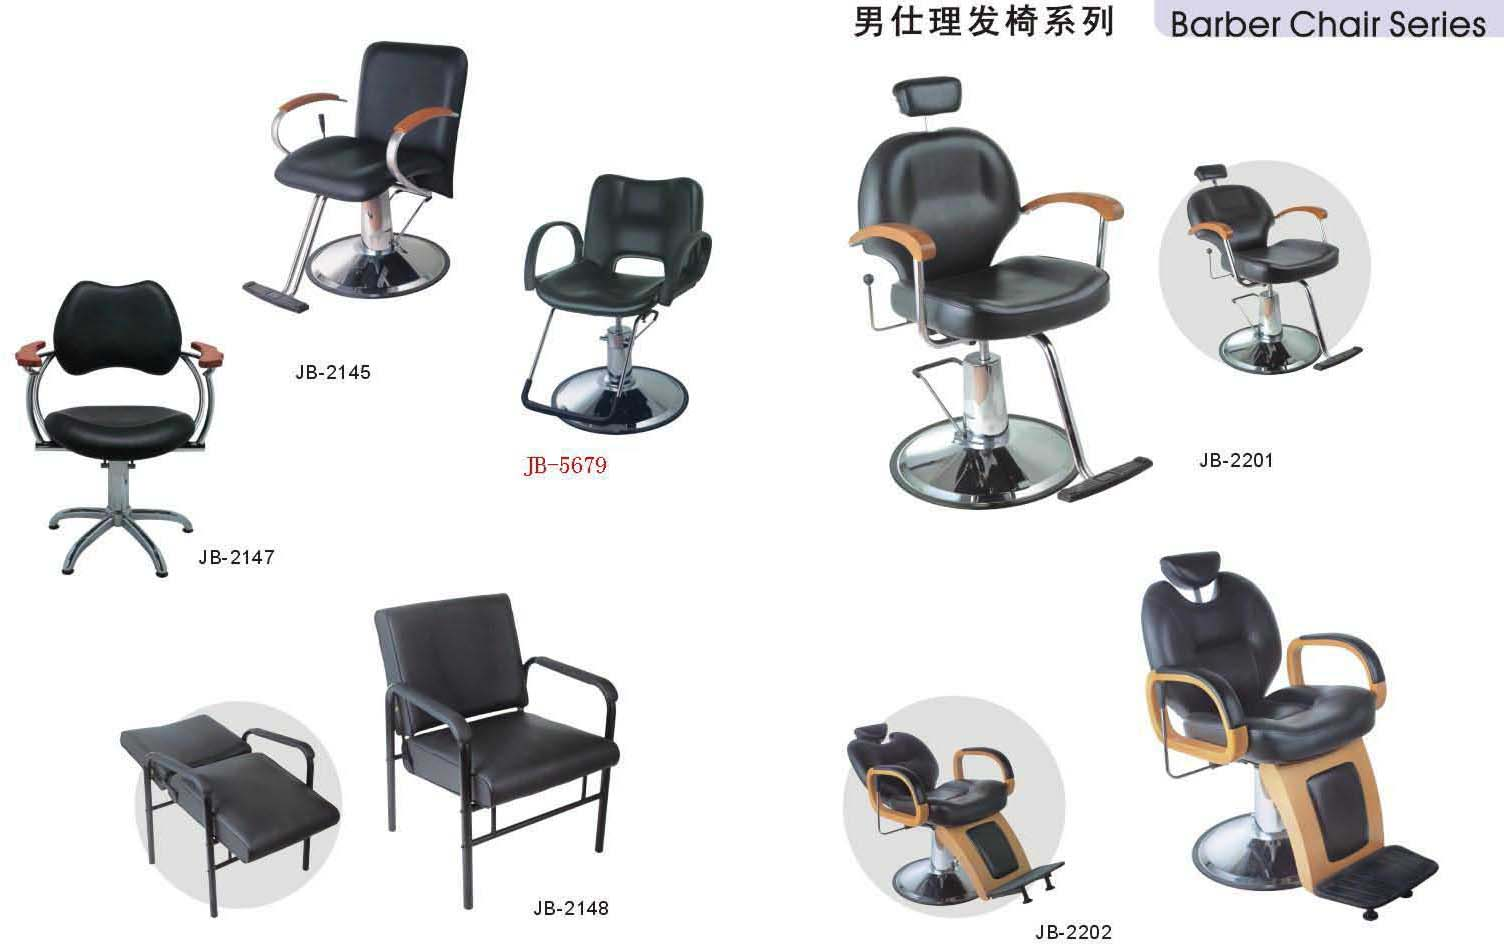 Beauty salon equipment barber shop equipment wholesale html autos weblog - Wholesale hair salon equipment ...